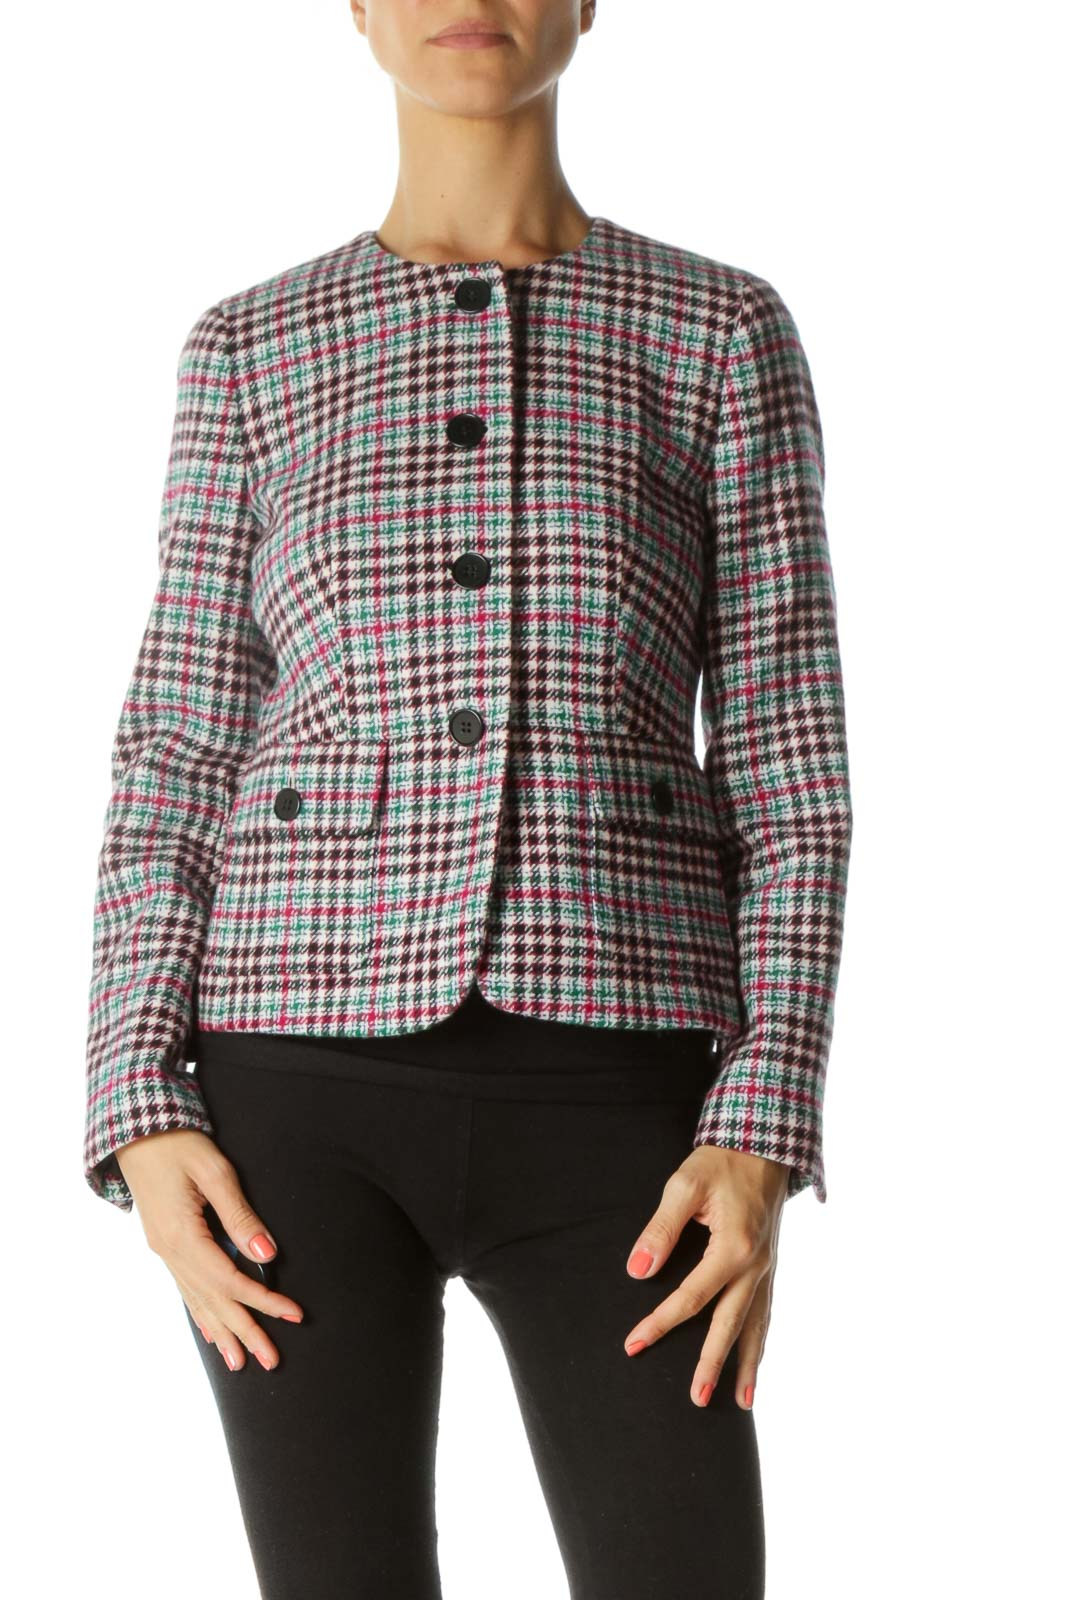 Black, Green and Pink Multicolor Tweed Jacket